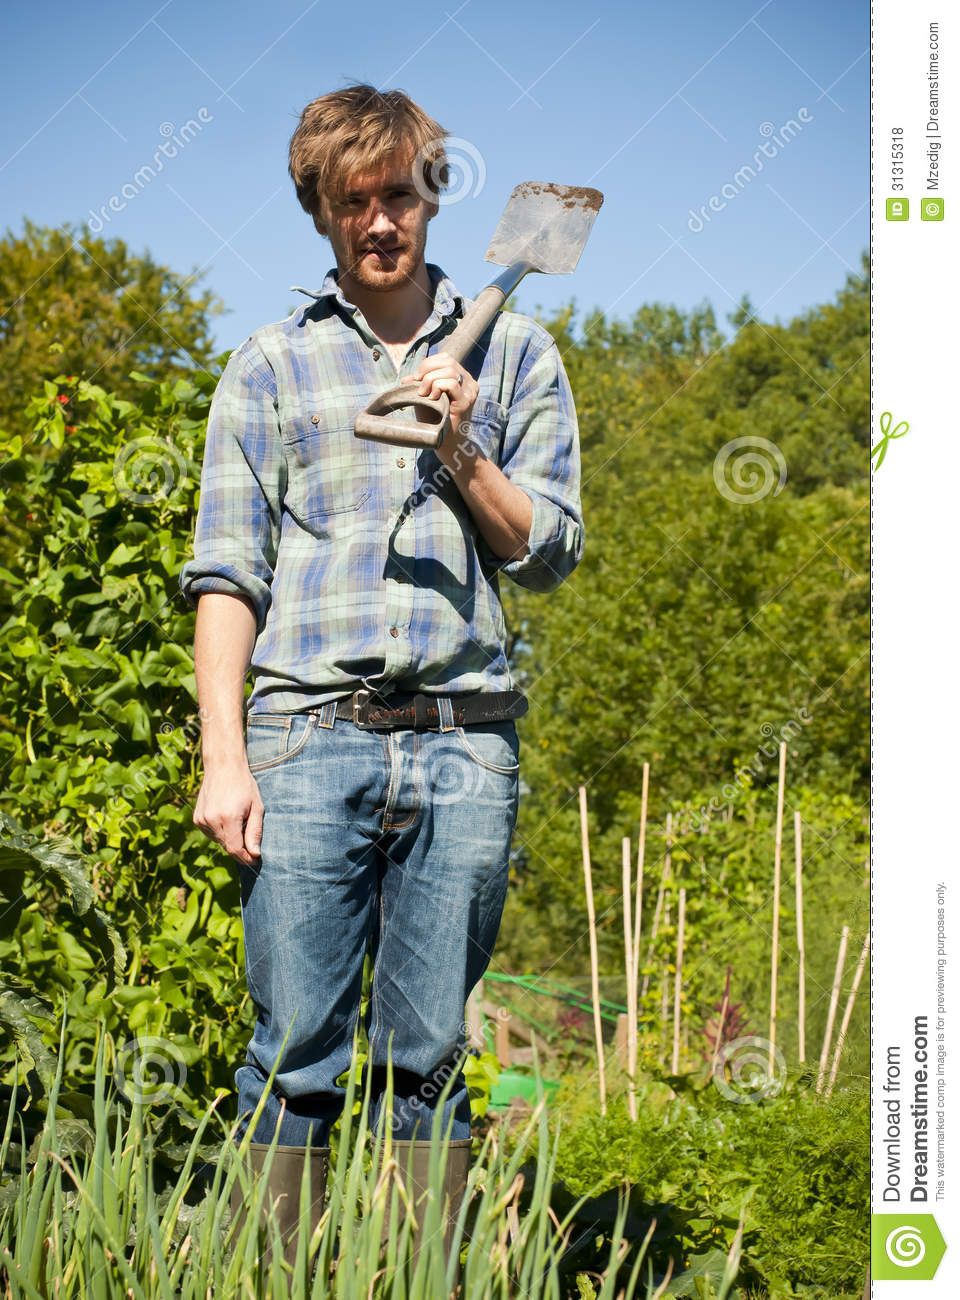 Man digging in vegetable garden royalty free stock photos for Digging ground dream meaning